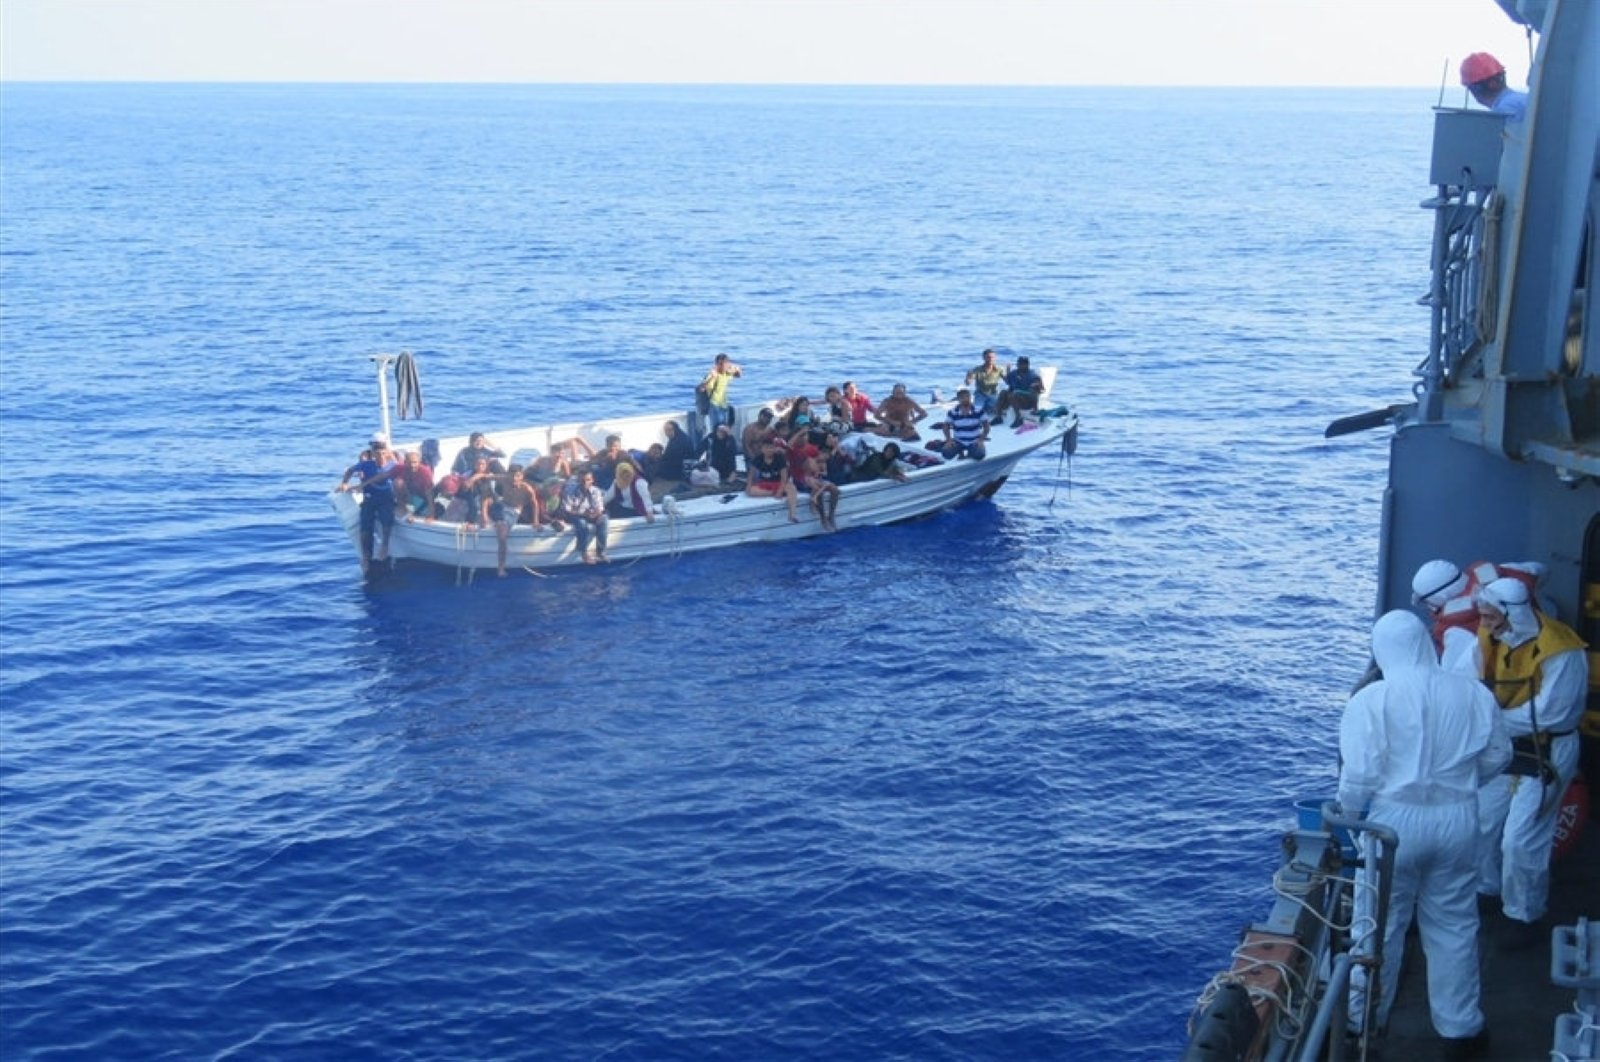 Thirty-six irregular migrants were rescued by the personnel of TCG Bozcaada corvette, which is on a mission as part of the United Nations Interim Force in Lebanon (UNIFIL), in the Mediterranean Sea, Sept. 15, 2020. (AA Photo)